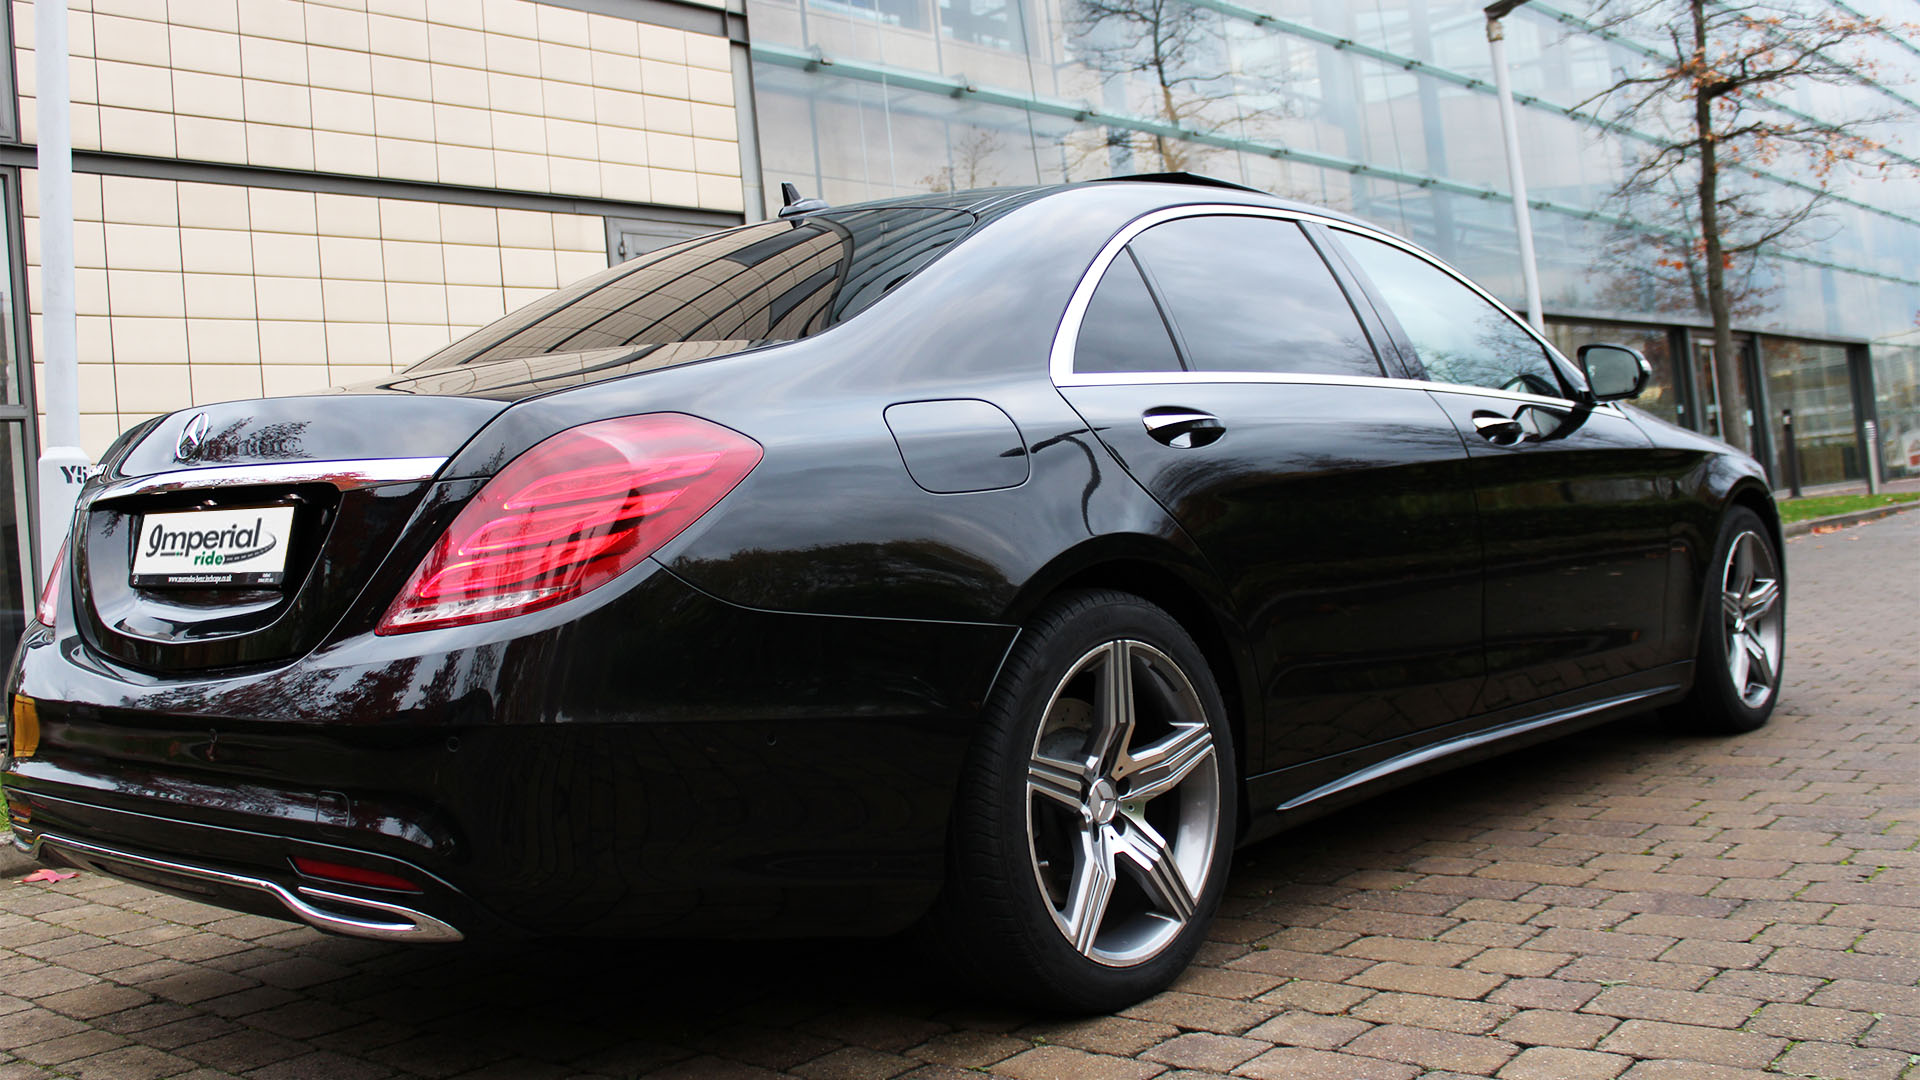 s-class-chauffeur-hire-london